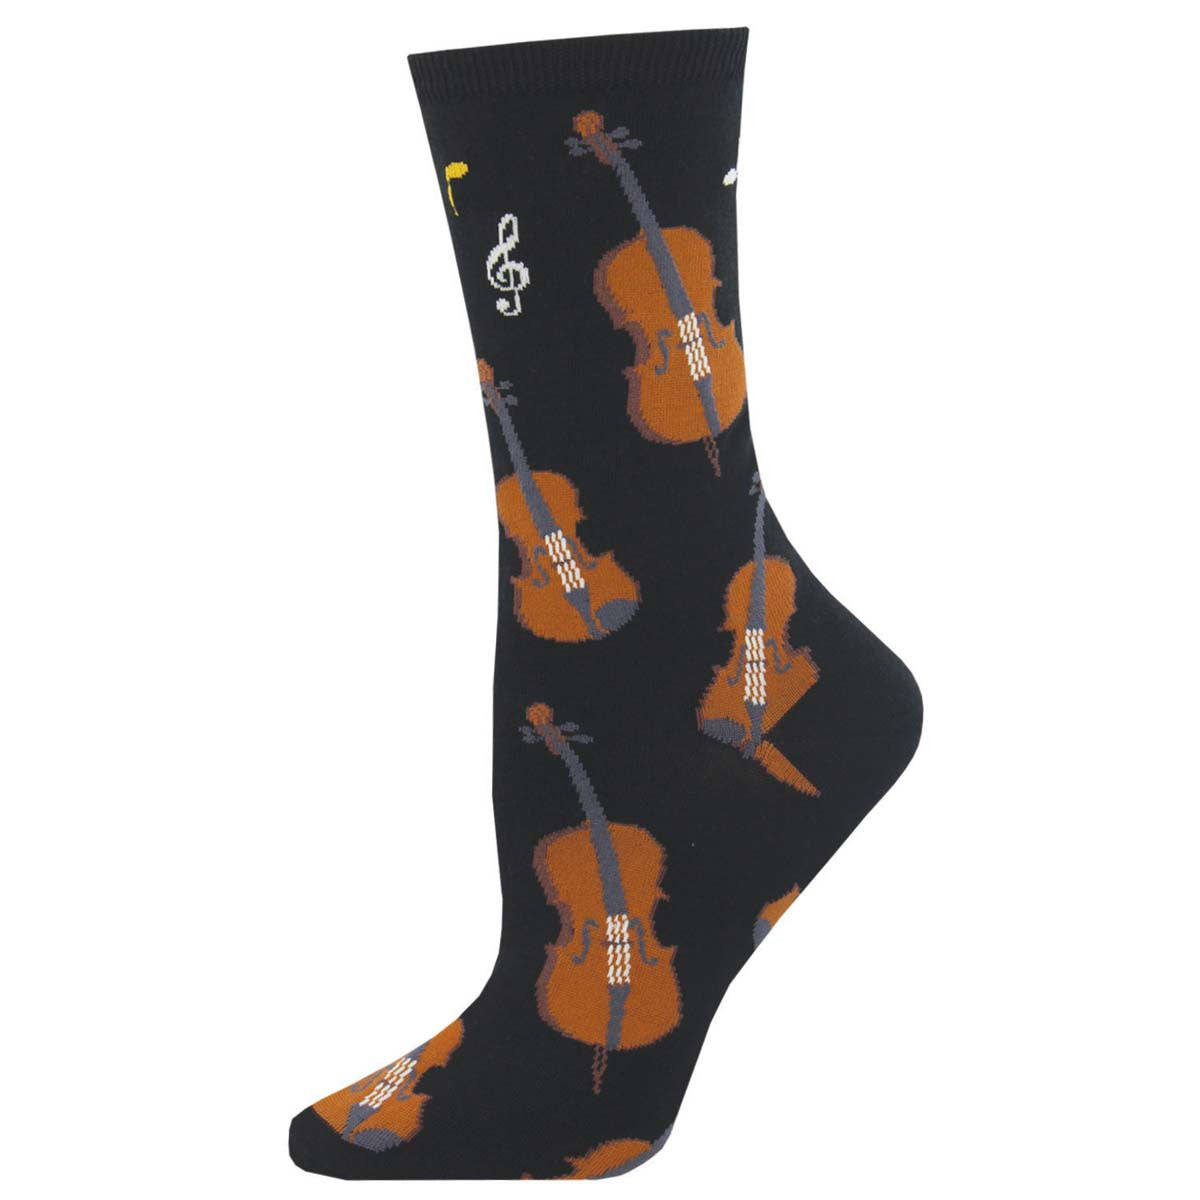 Women's Socks, Orchestra Strings